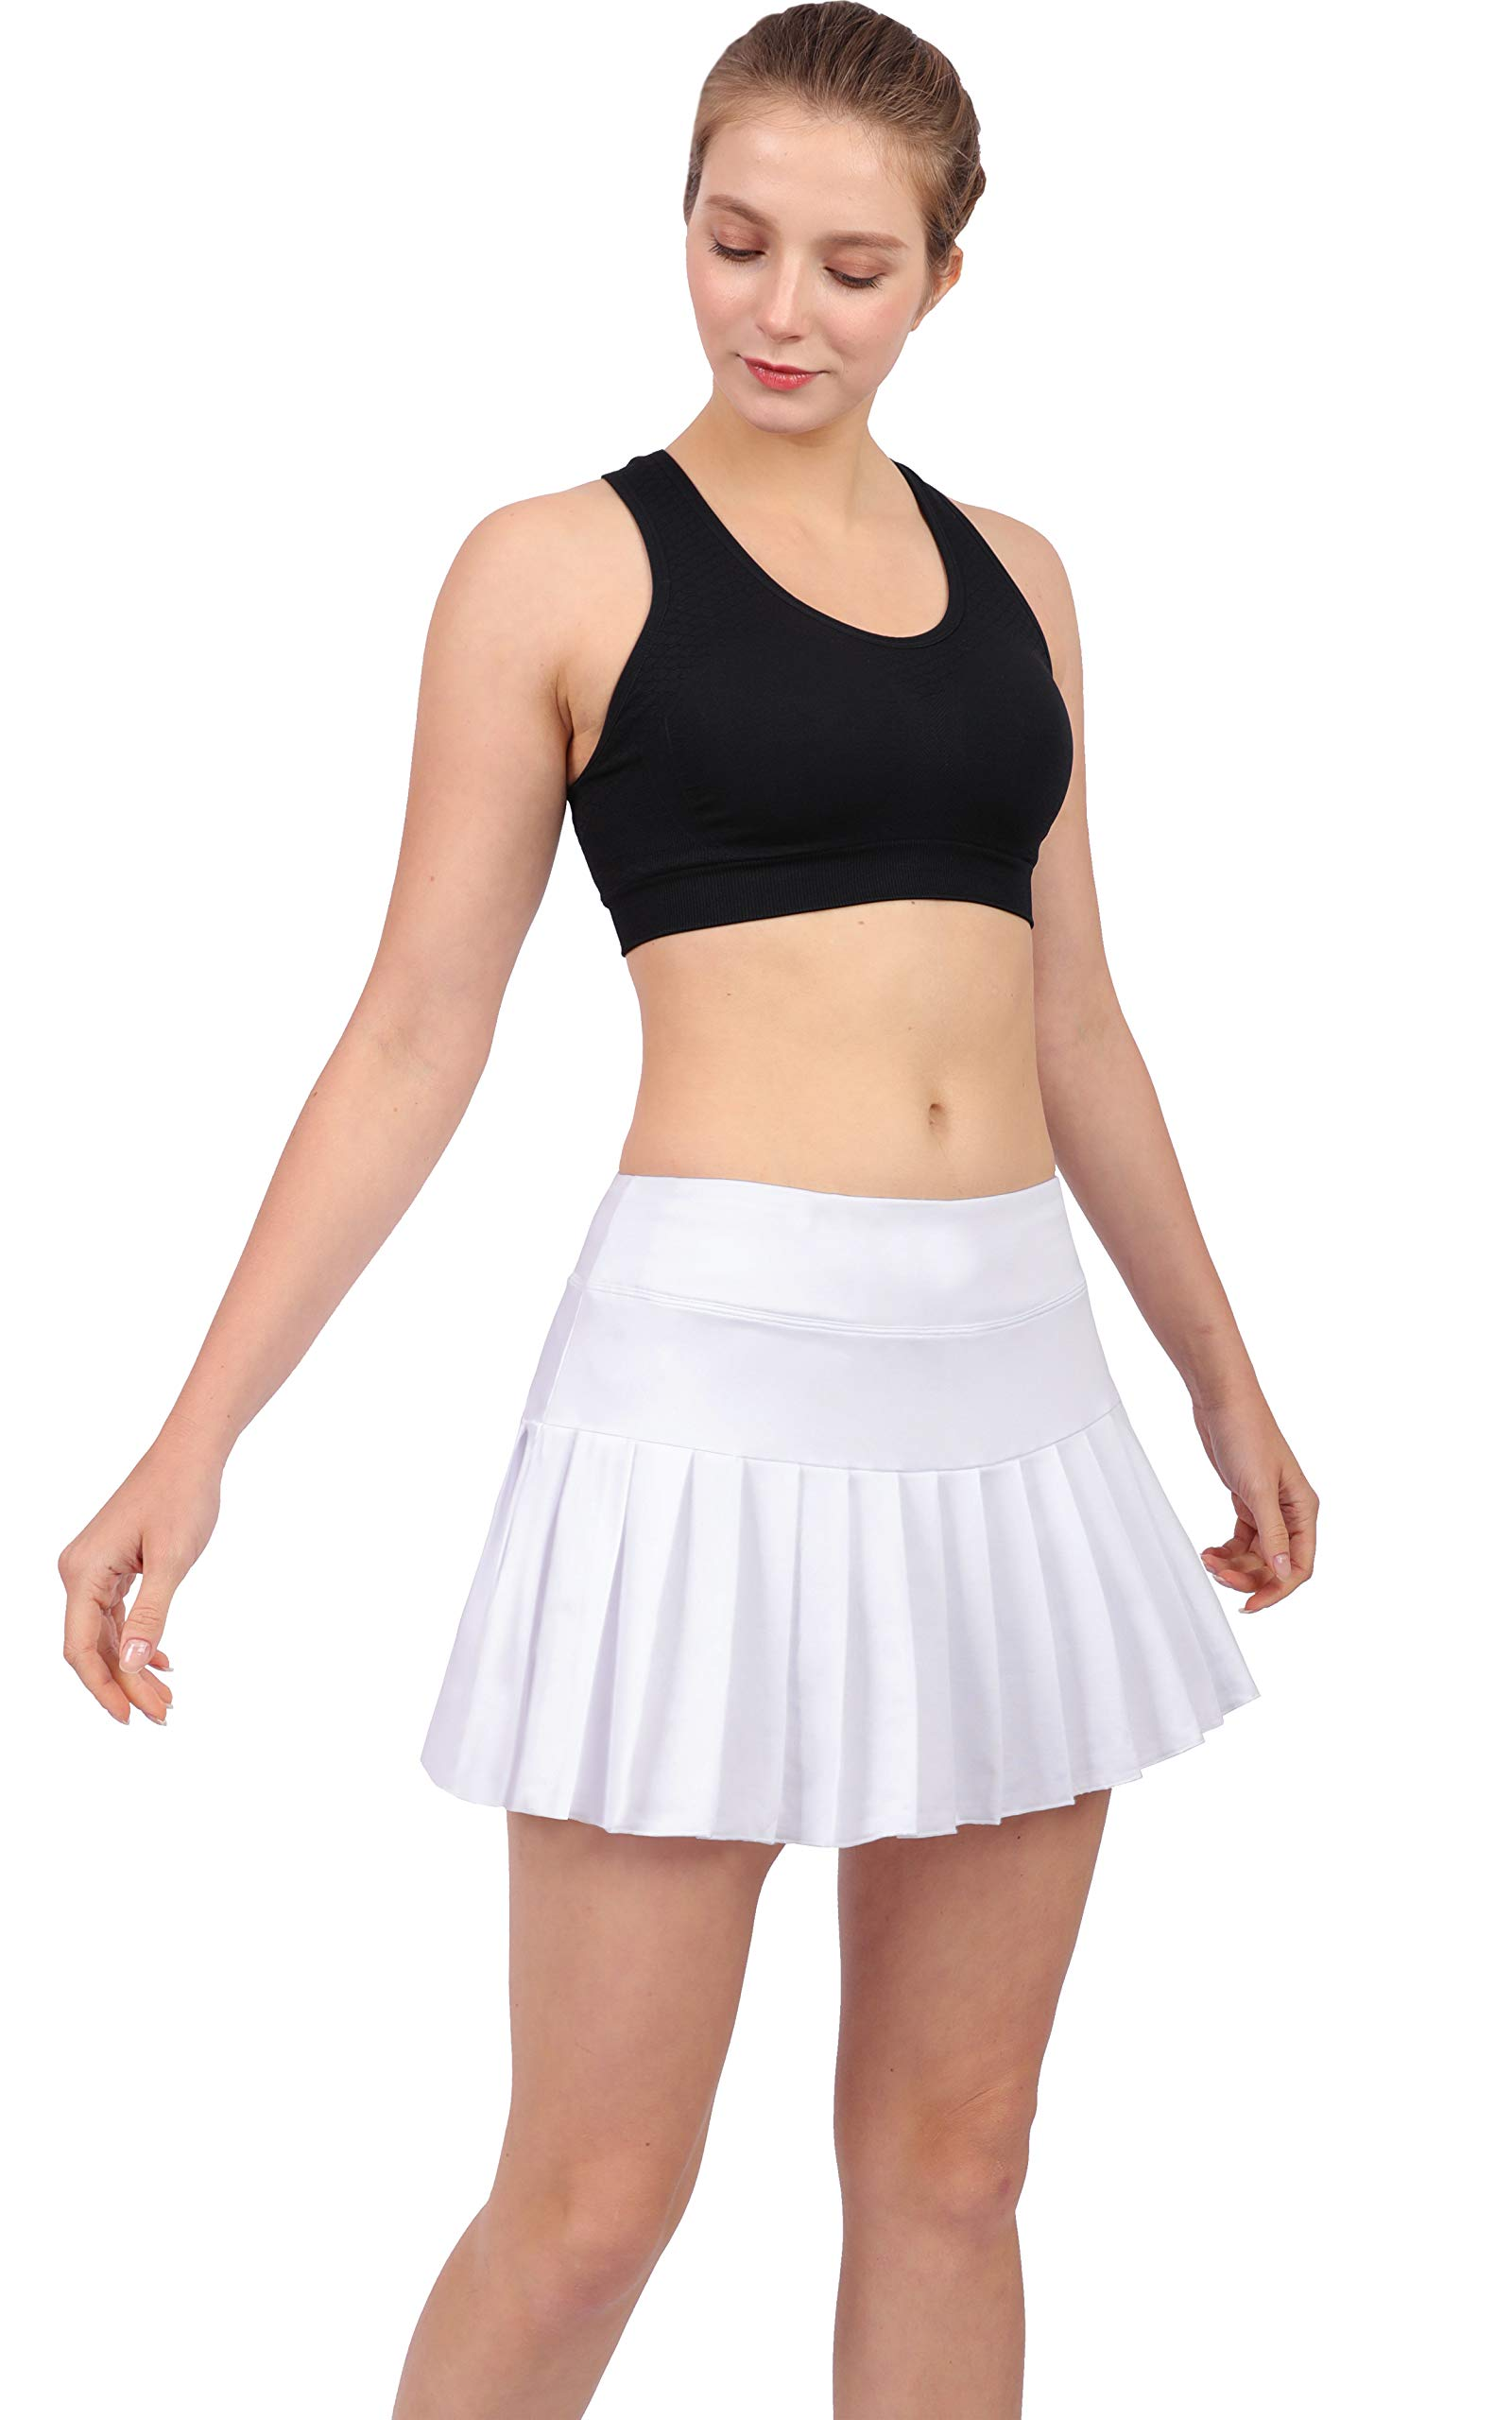 Womens Tennis Pleated Skorts Golf Workout High Waist Biult in Skirts Sports Active Wear with Pockets White by HonourSex